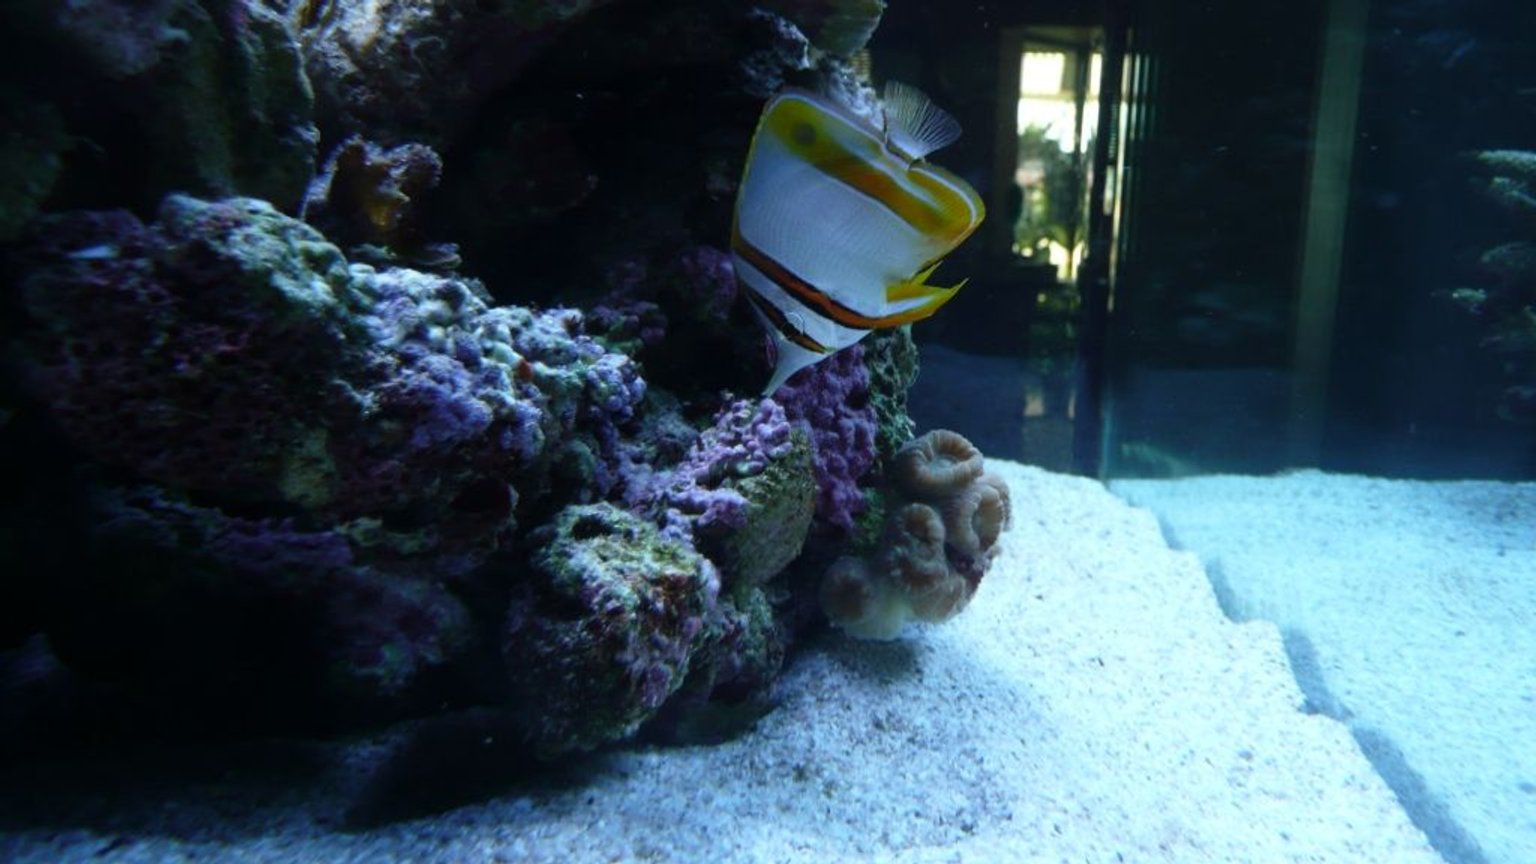 saltwater fish - chelmon rostratus - copperband butterflyfish stocking in 60 gallons tank - Copperband butterfly fish